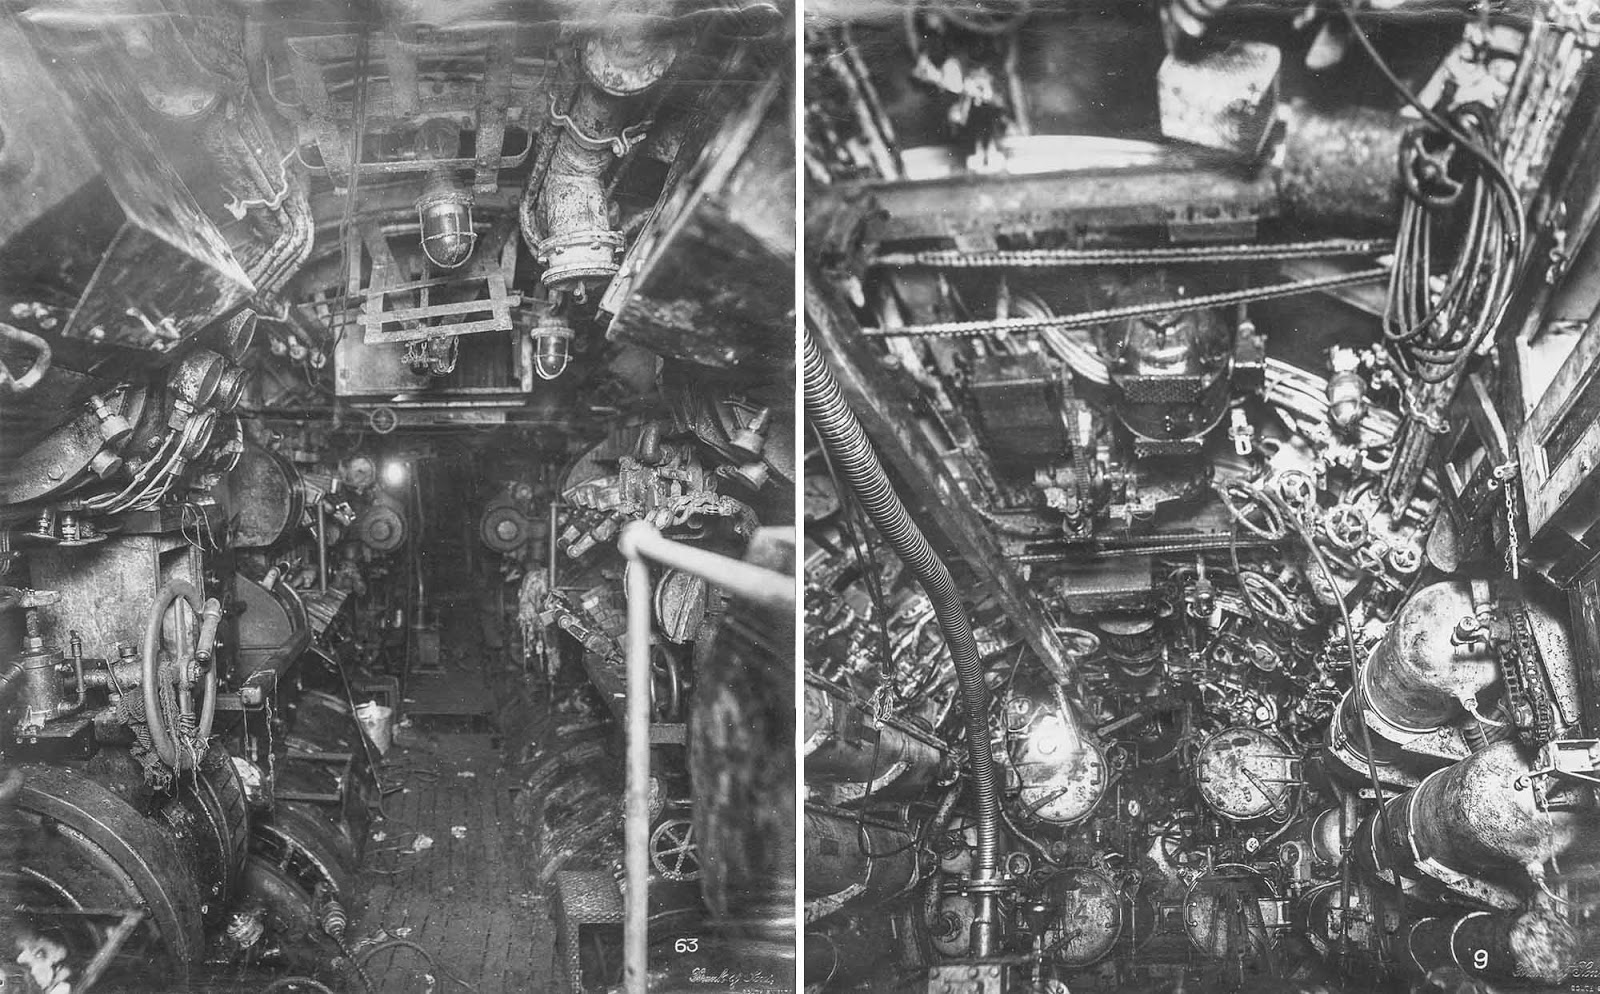 (Left) Electric control room, looking forward. (Right) Forward torpedo room.